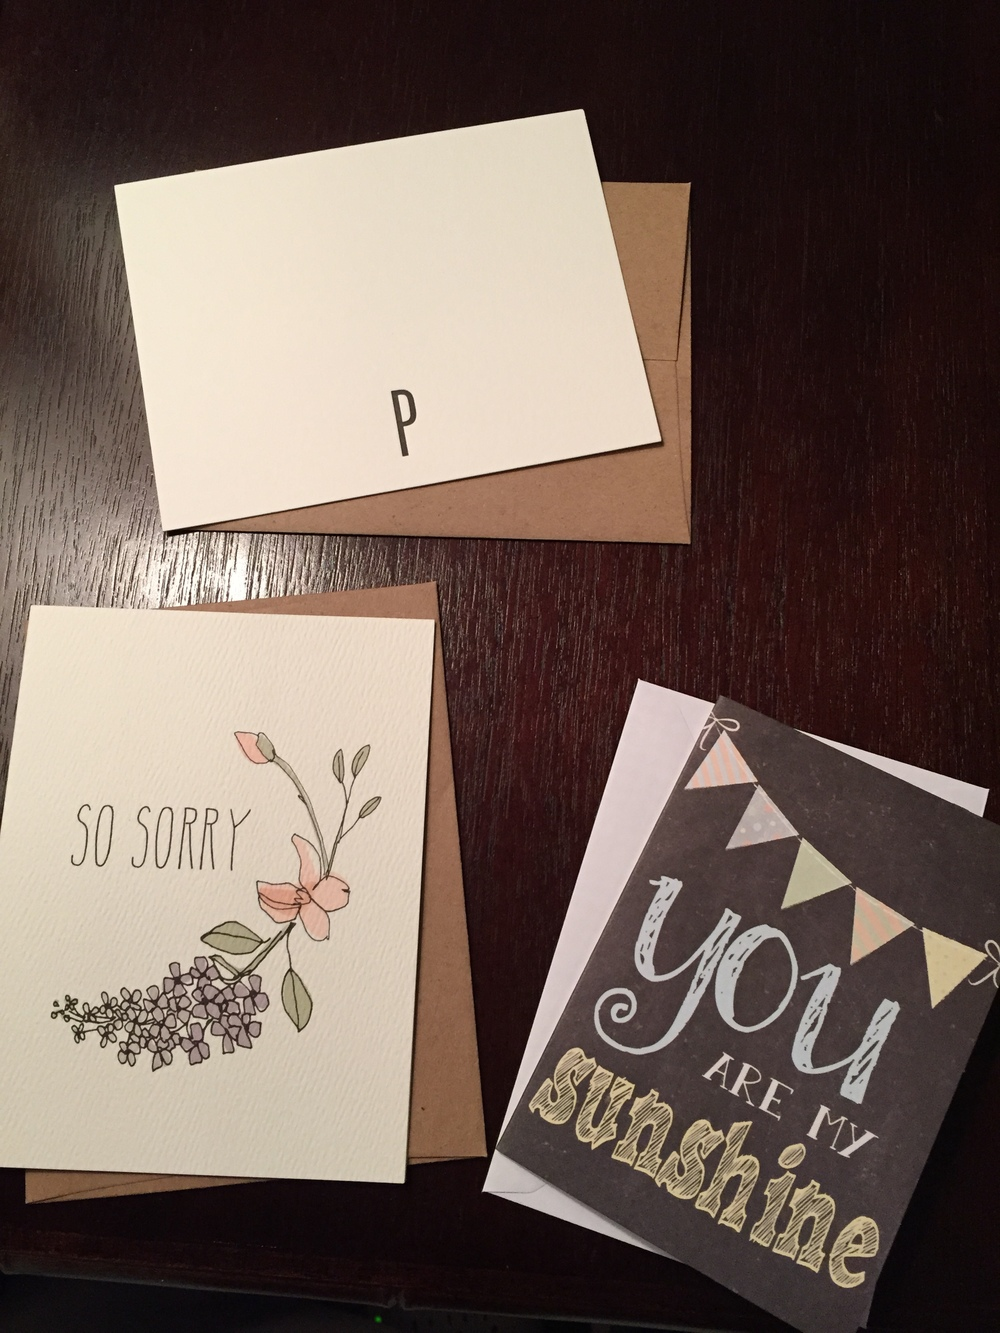 """I purchased the """"P"""" cards from a local vendor at a farmer's market - I will write my note to the mom who lost the baby. The """"So Sorry"""" card is from  Brown Ink  and I will write a note to my friend who lost her brother. I wrote Mandy a note on the """"You Are My Sunshine"""" card which I bought from Tuesday Morning."""